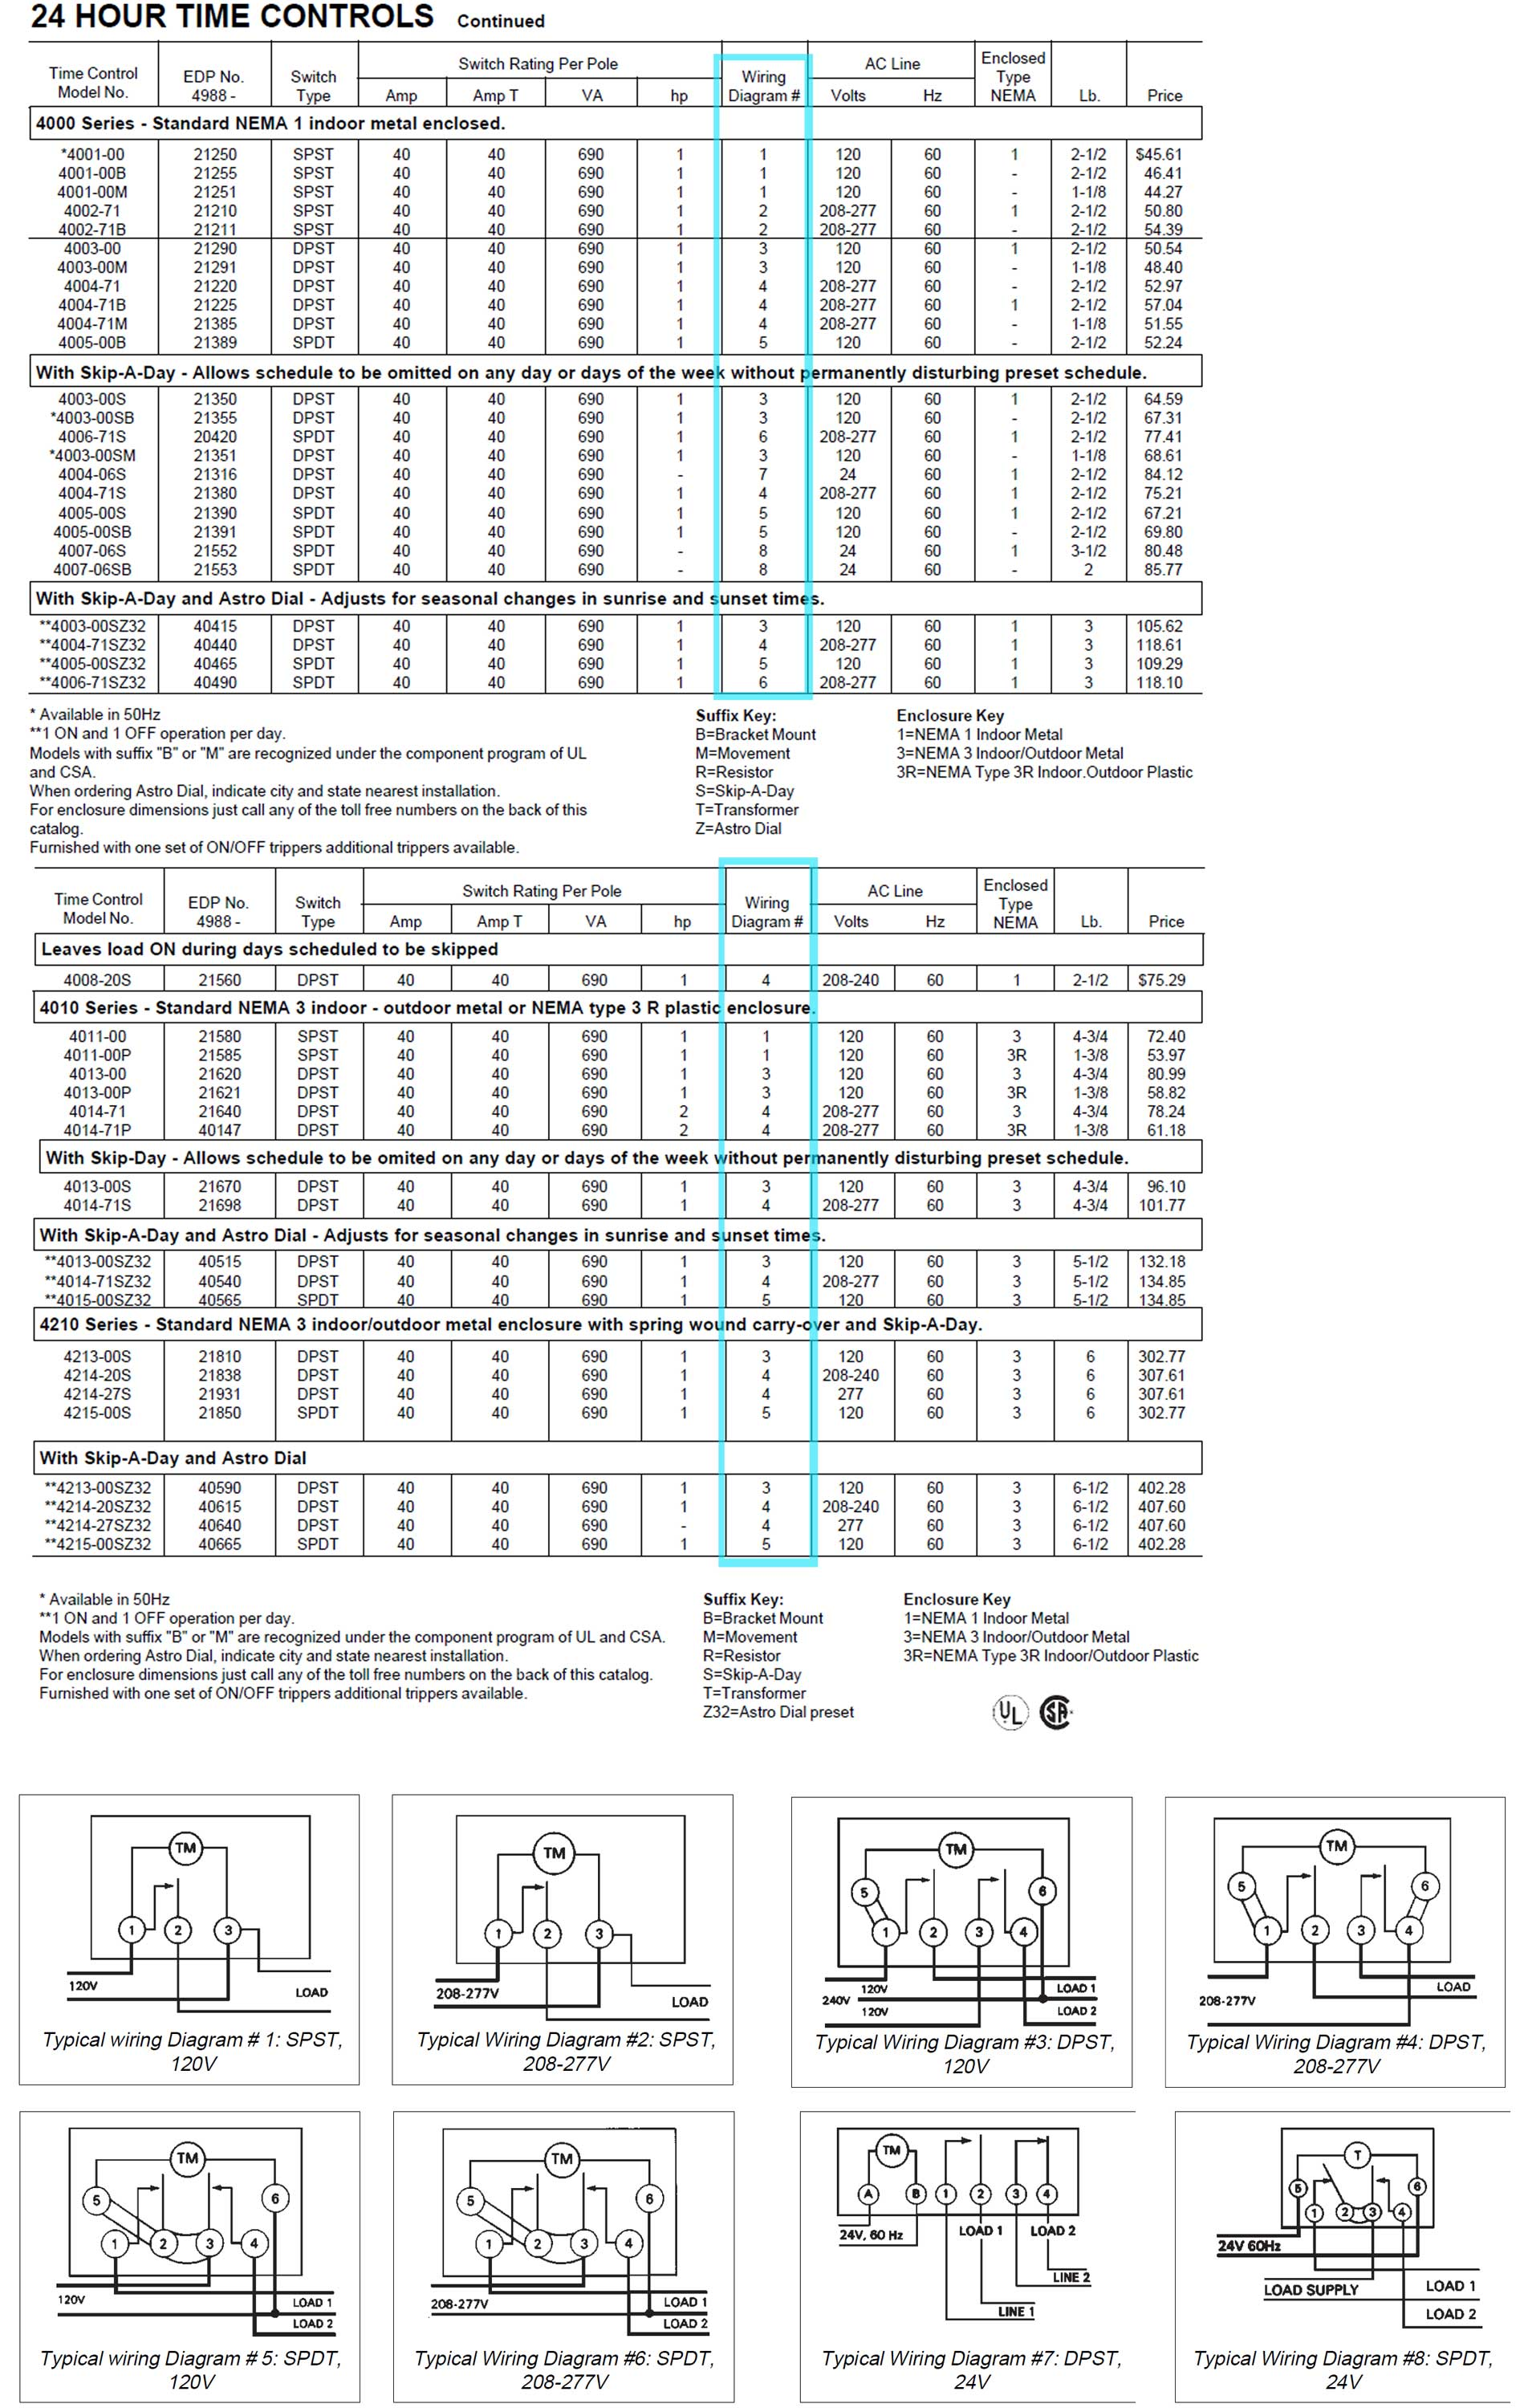 Paragon Timers And Manuals Wiring Diagram Programming 4000 Installation Manual With Series Install Operation 4010 4200 Model Numbers